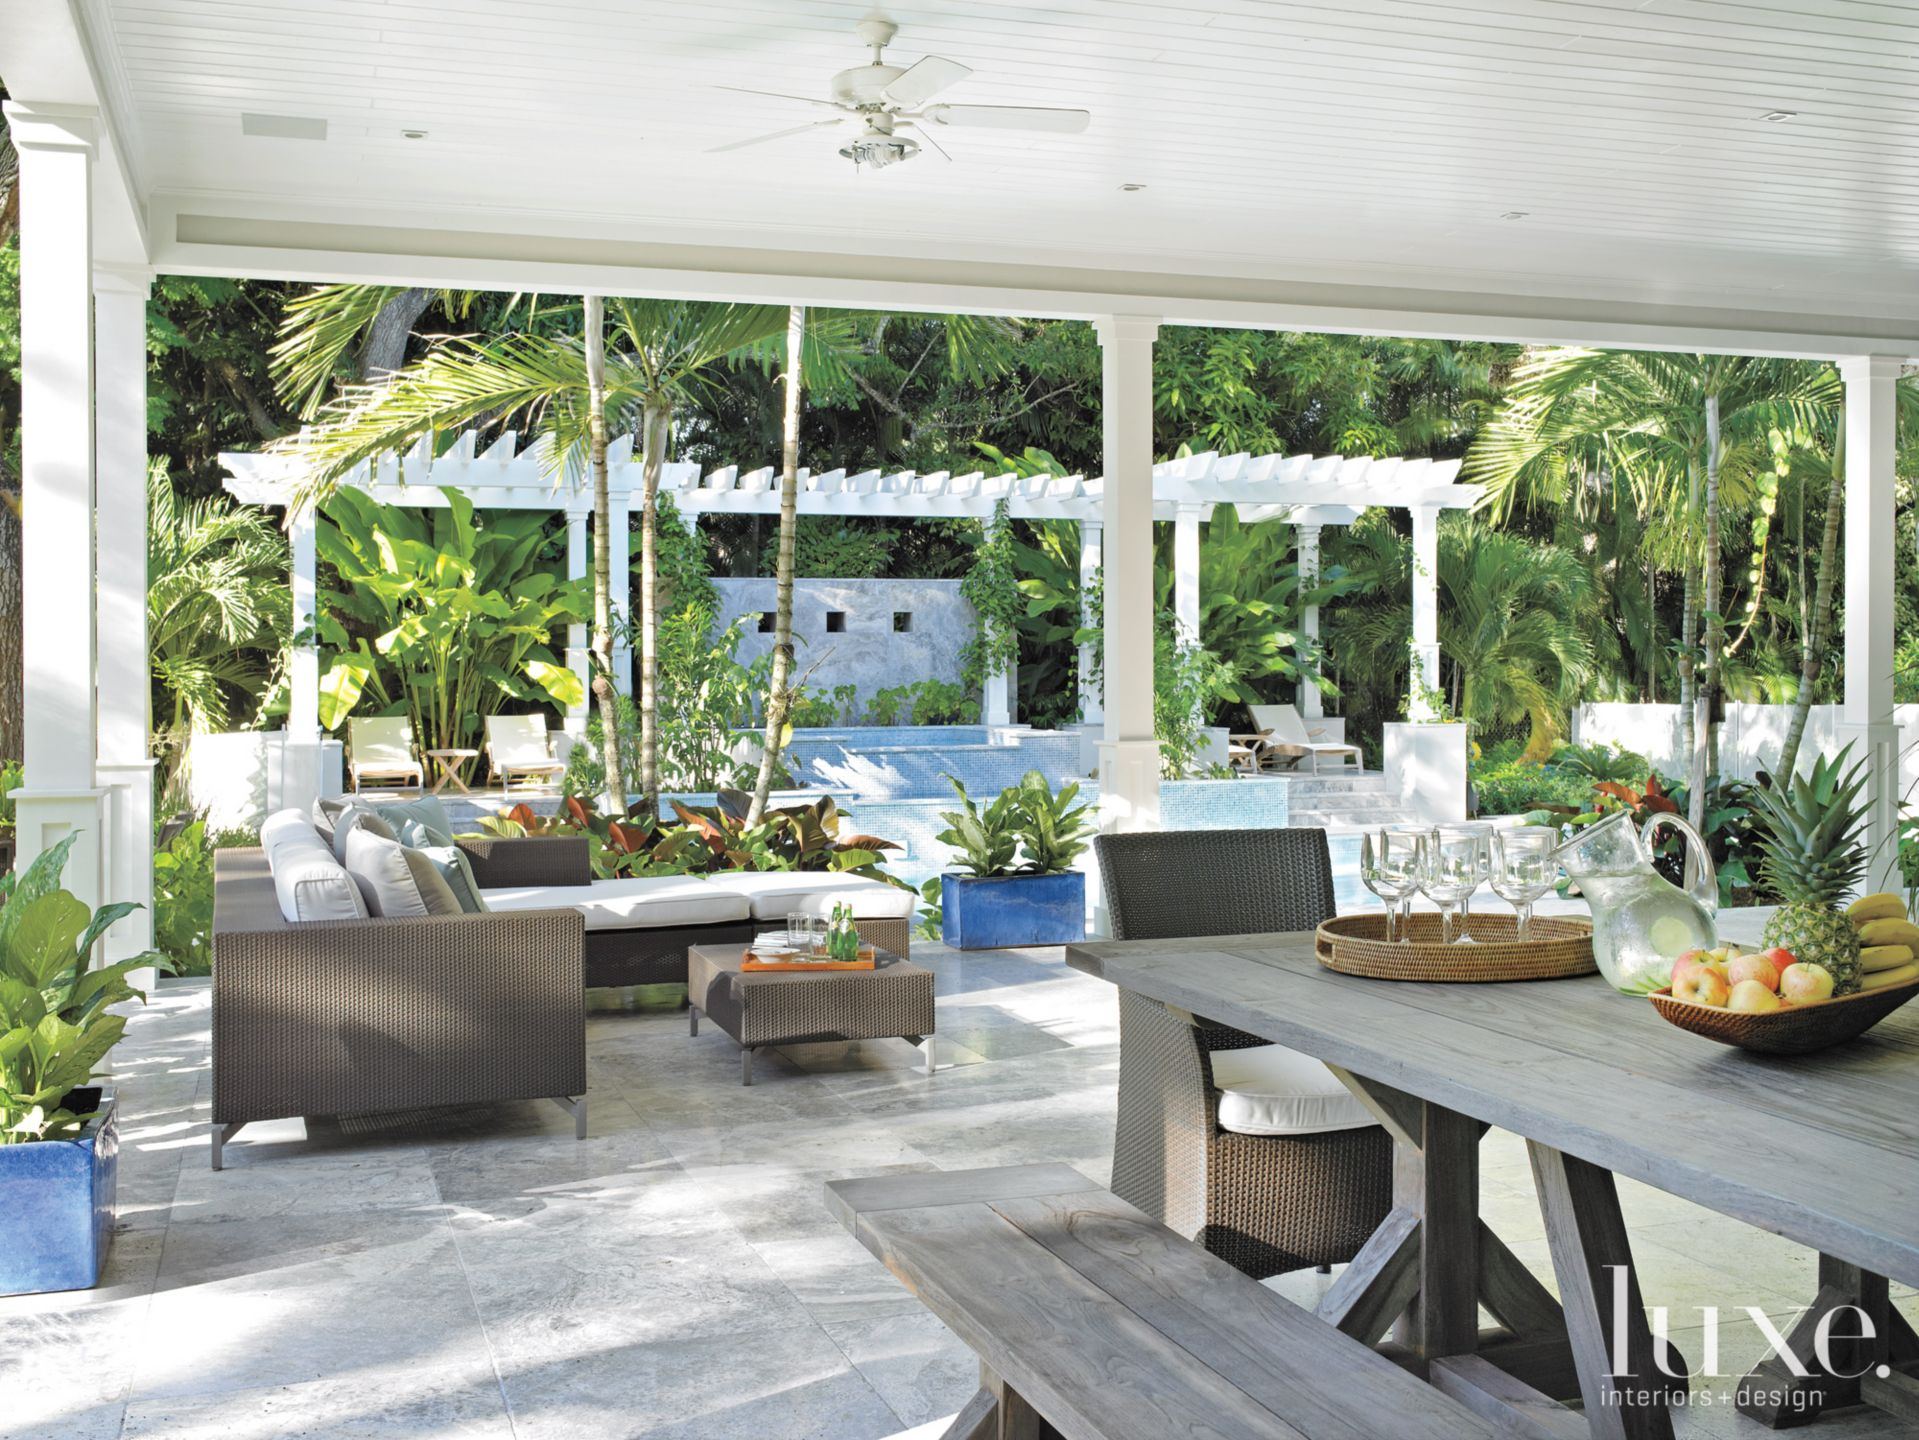 Contemporary White Trellised Pergola with Tropical Feel